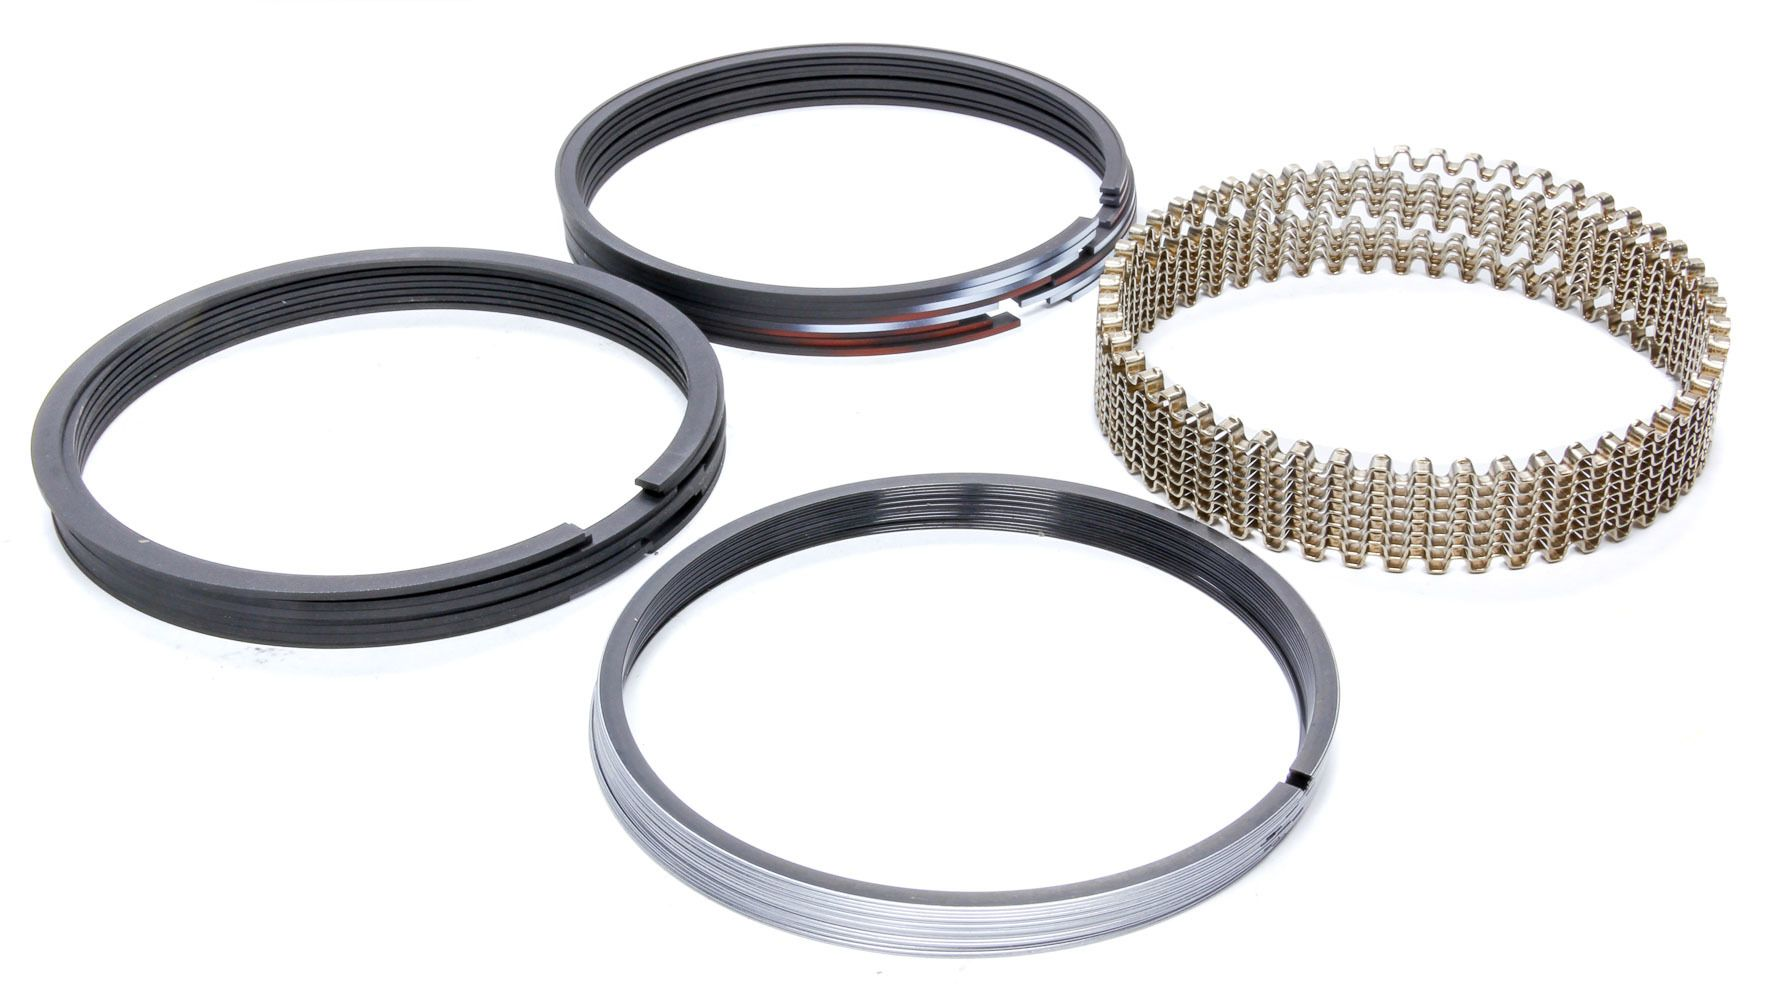 Piston Ring Set 4.471 HTD/HT 017 1/16 3/16 AKERLY-CHILDS 19526-35